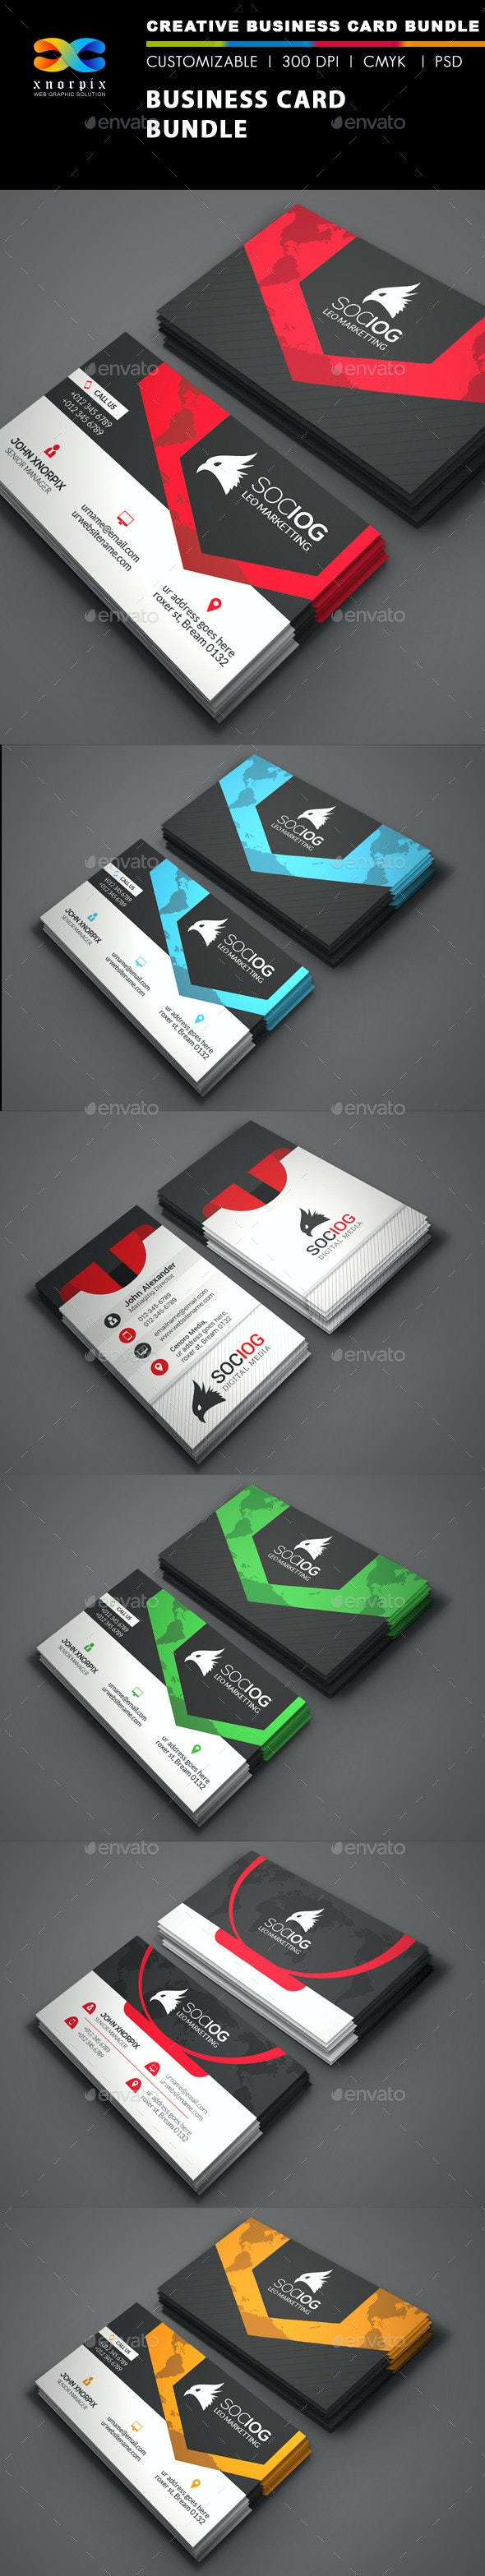 Business Card Bundle 3 in 1-Vol 42 - Corporate Business Cards